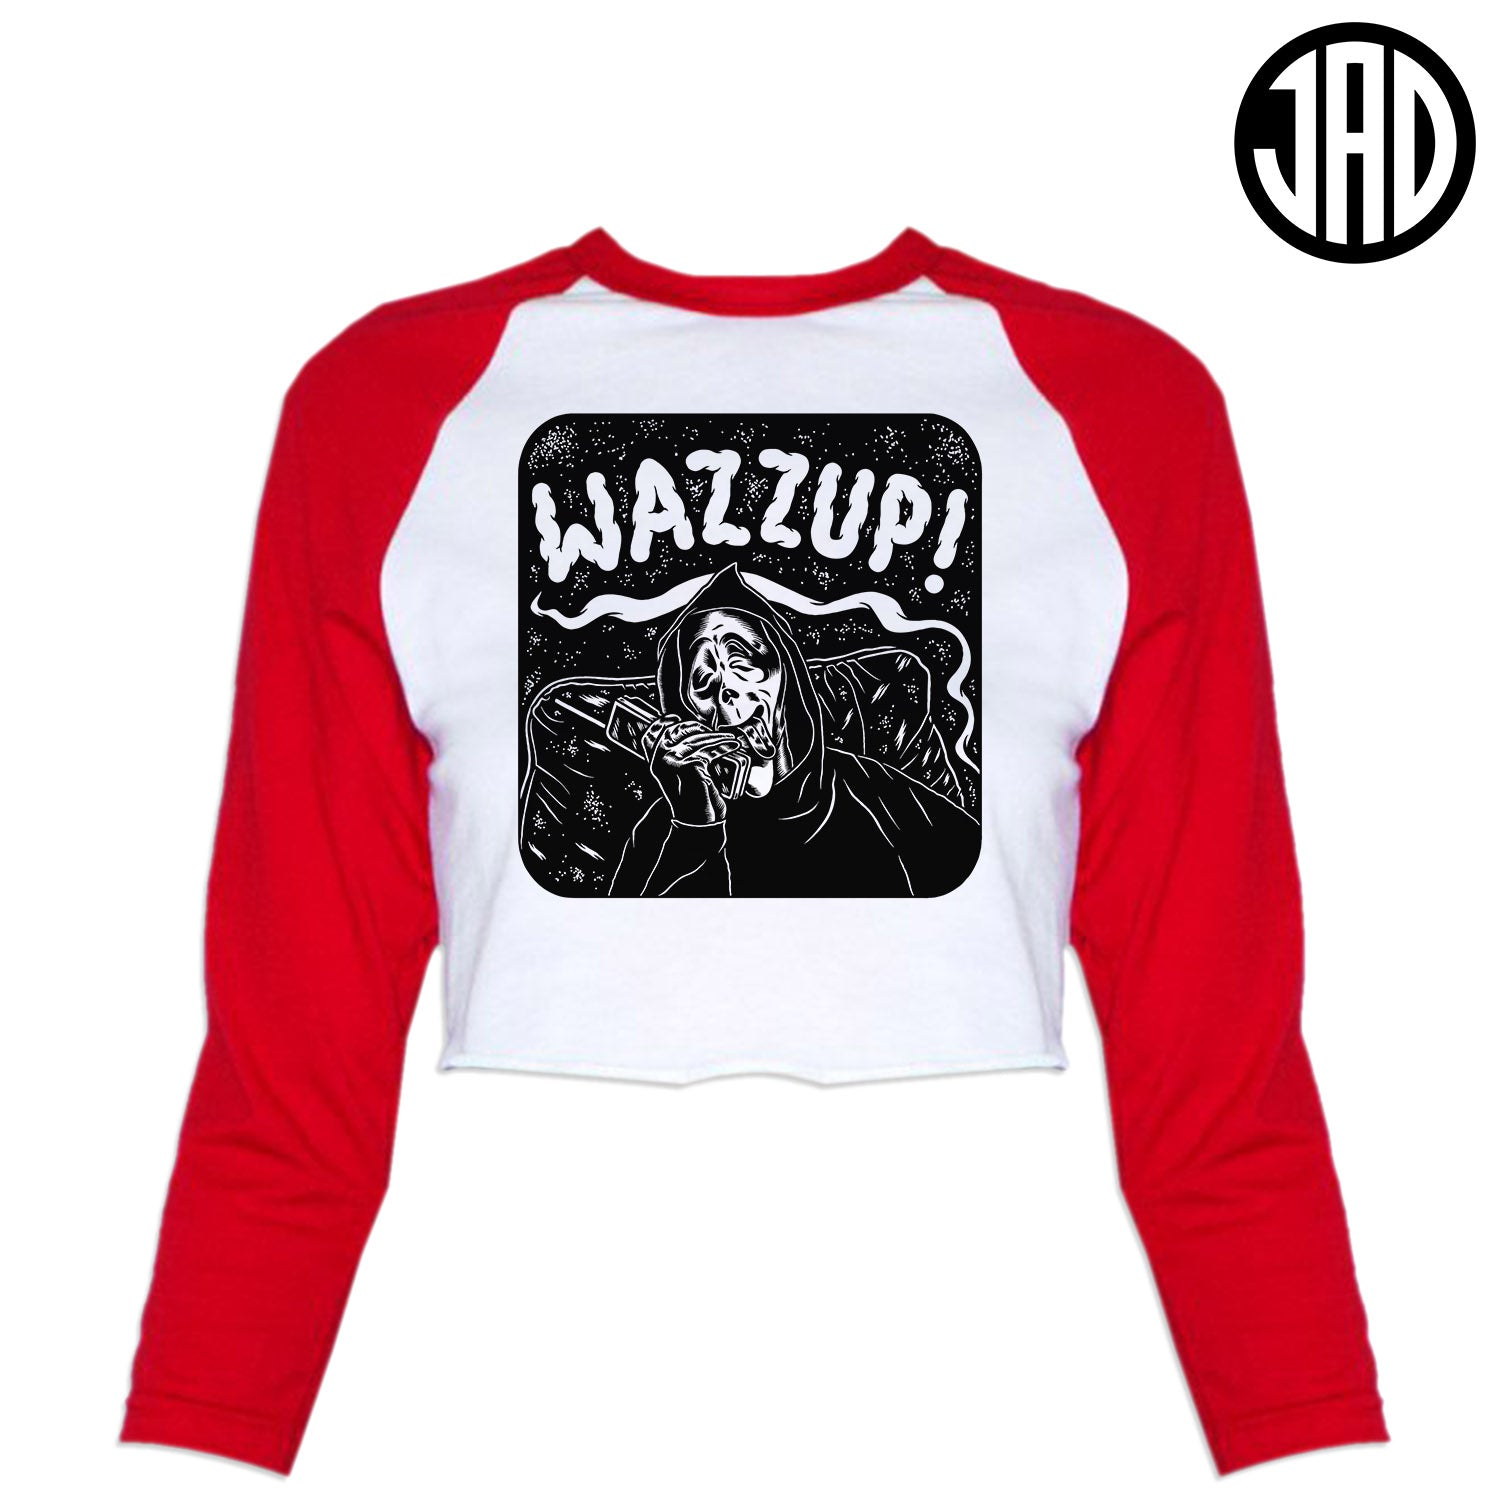 Wazzup - Women's Cropped Baseball Tee